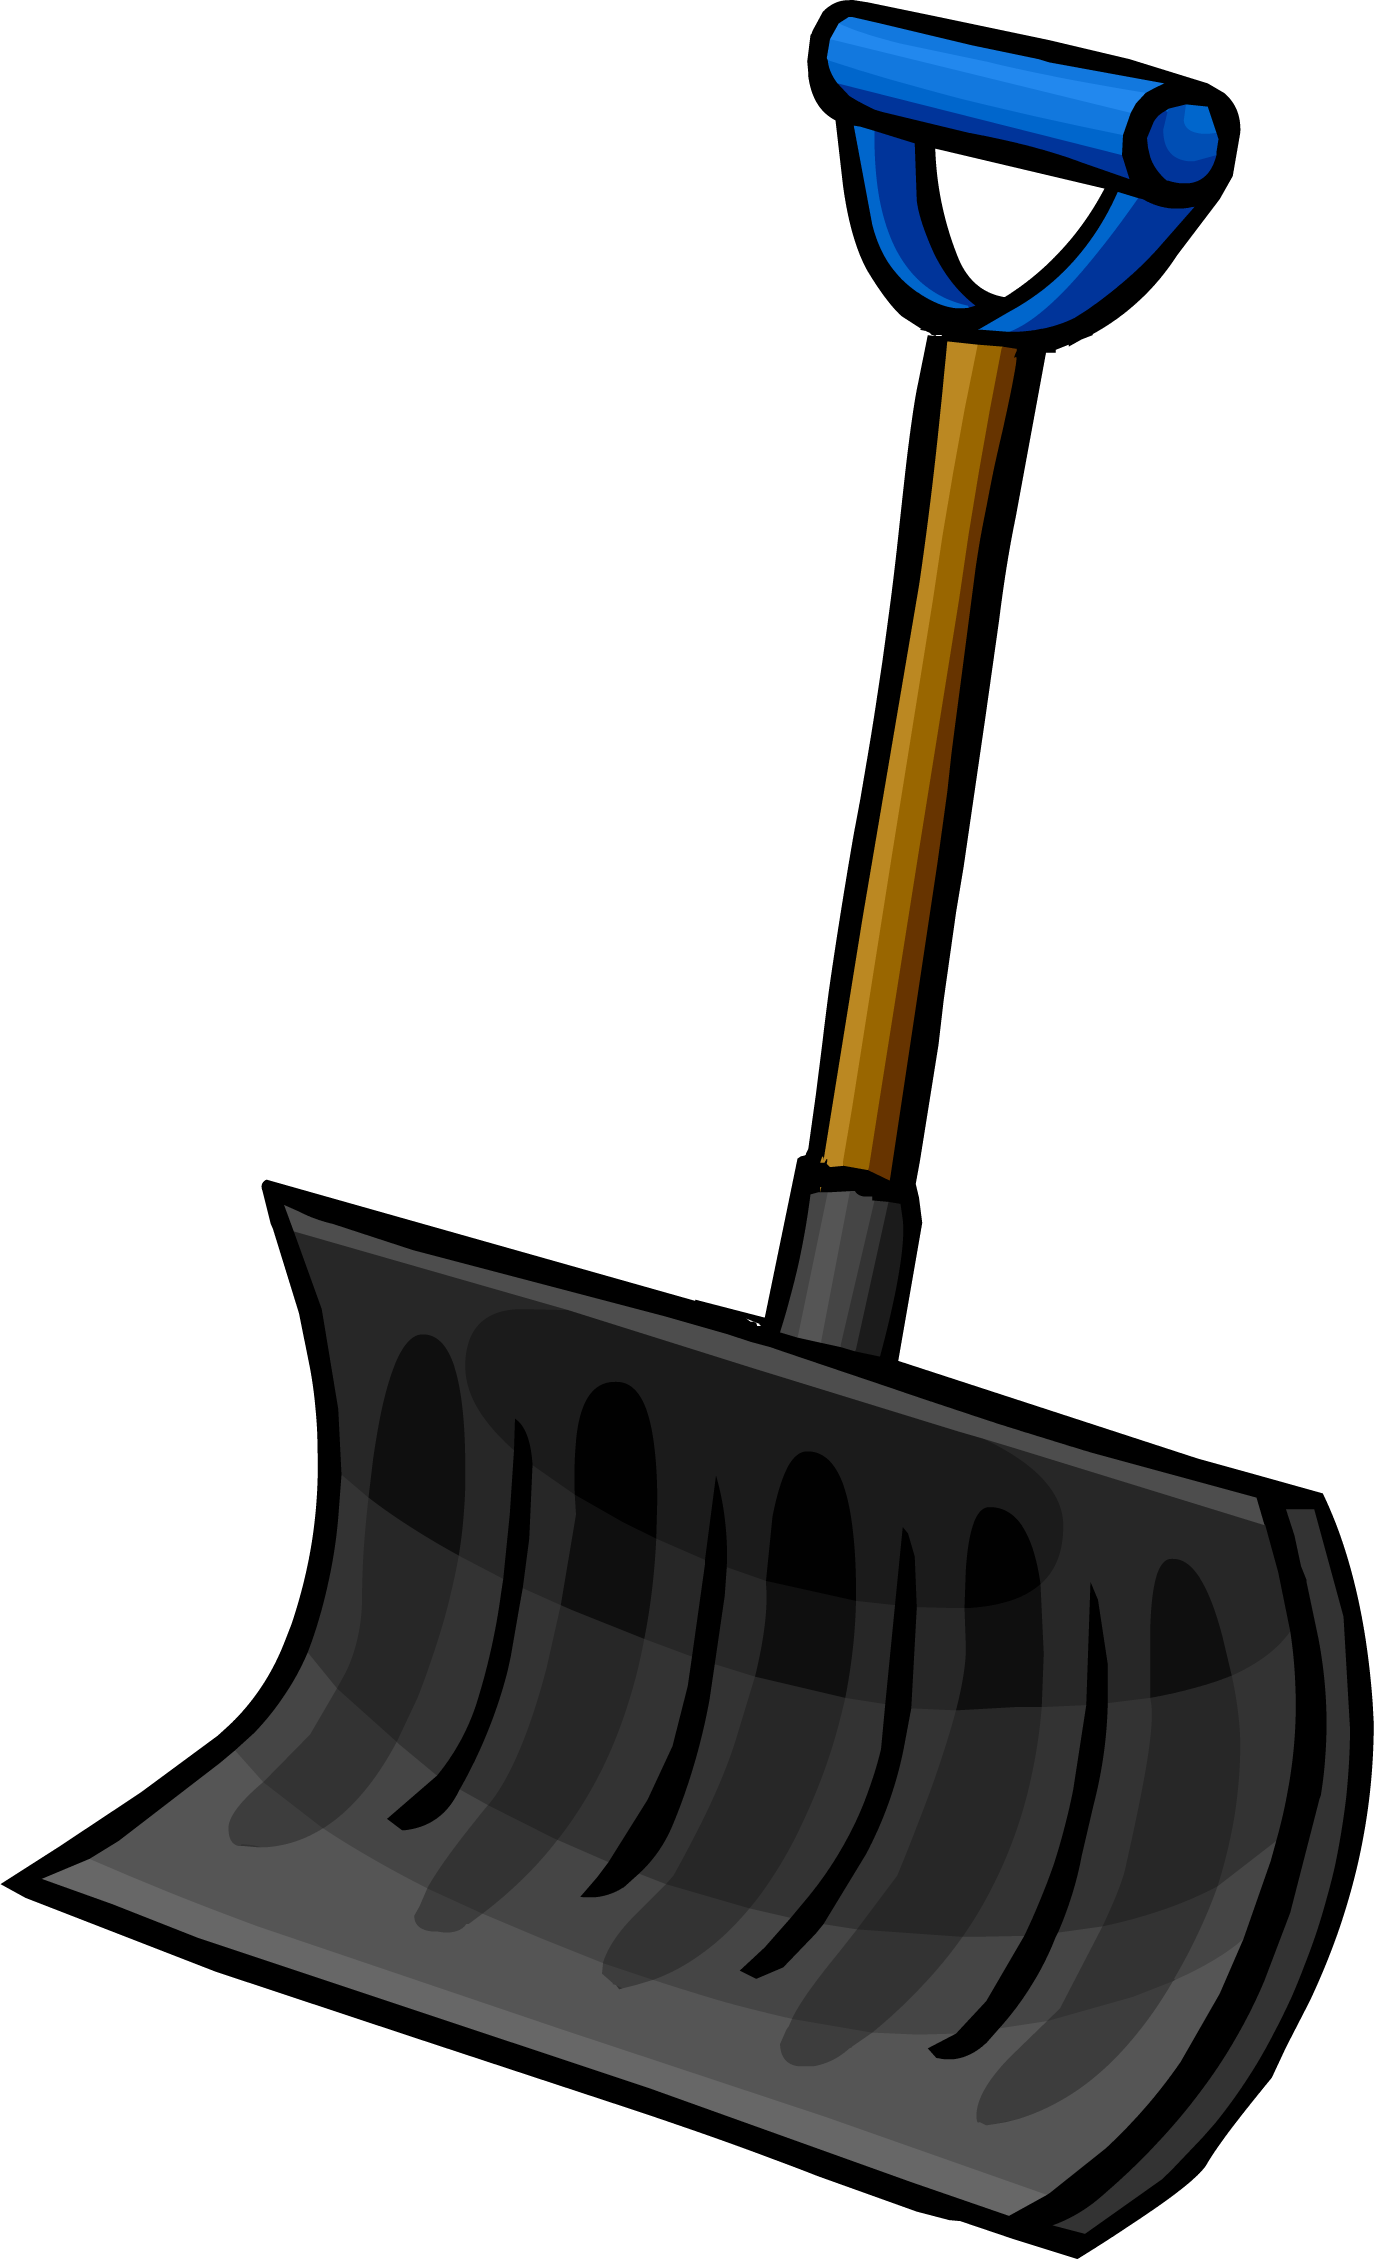 Shovel clipart snow shovel. Club penguin wiki fandom